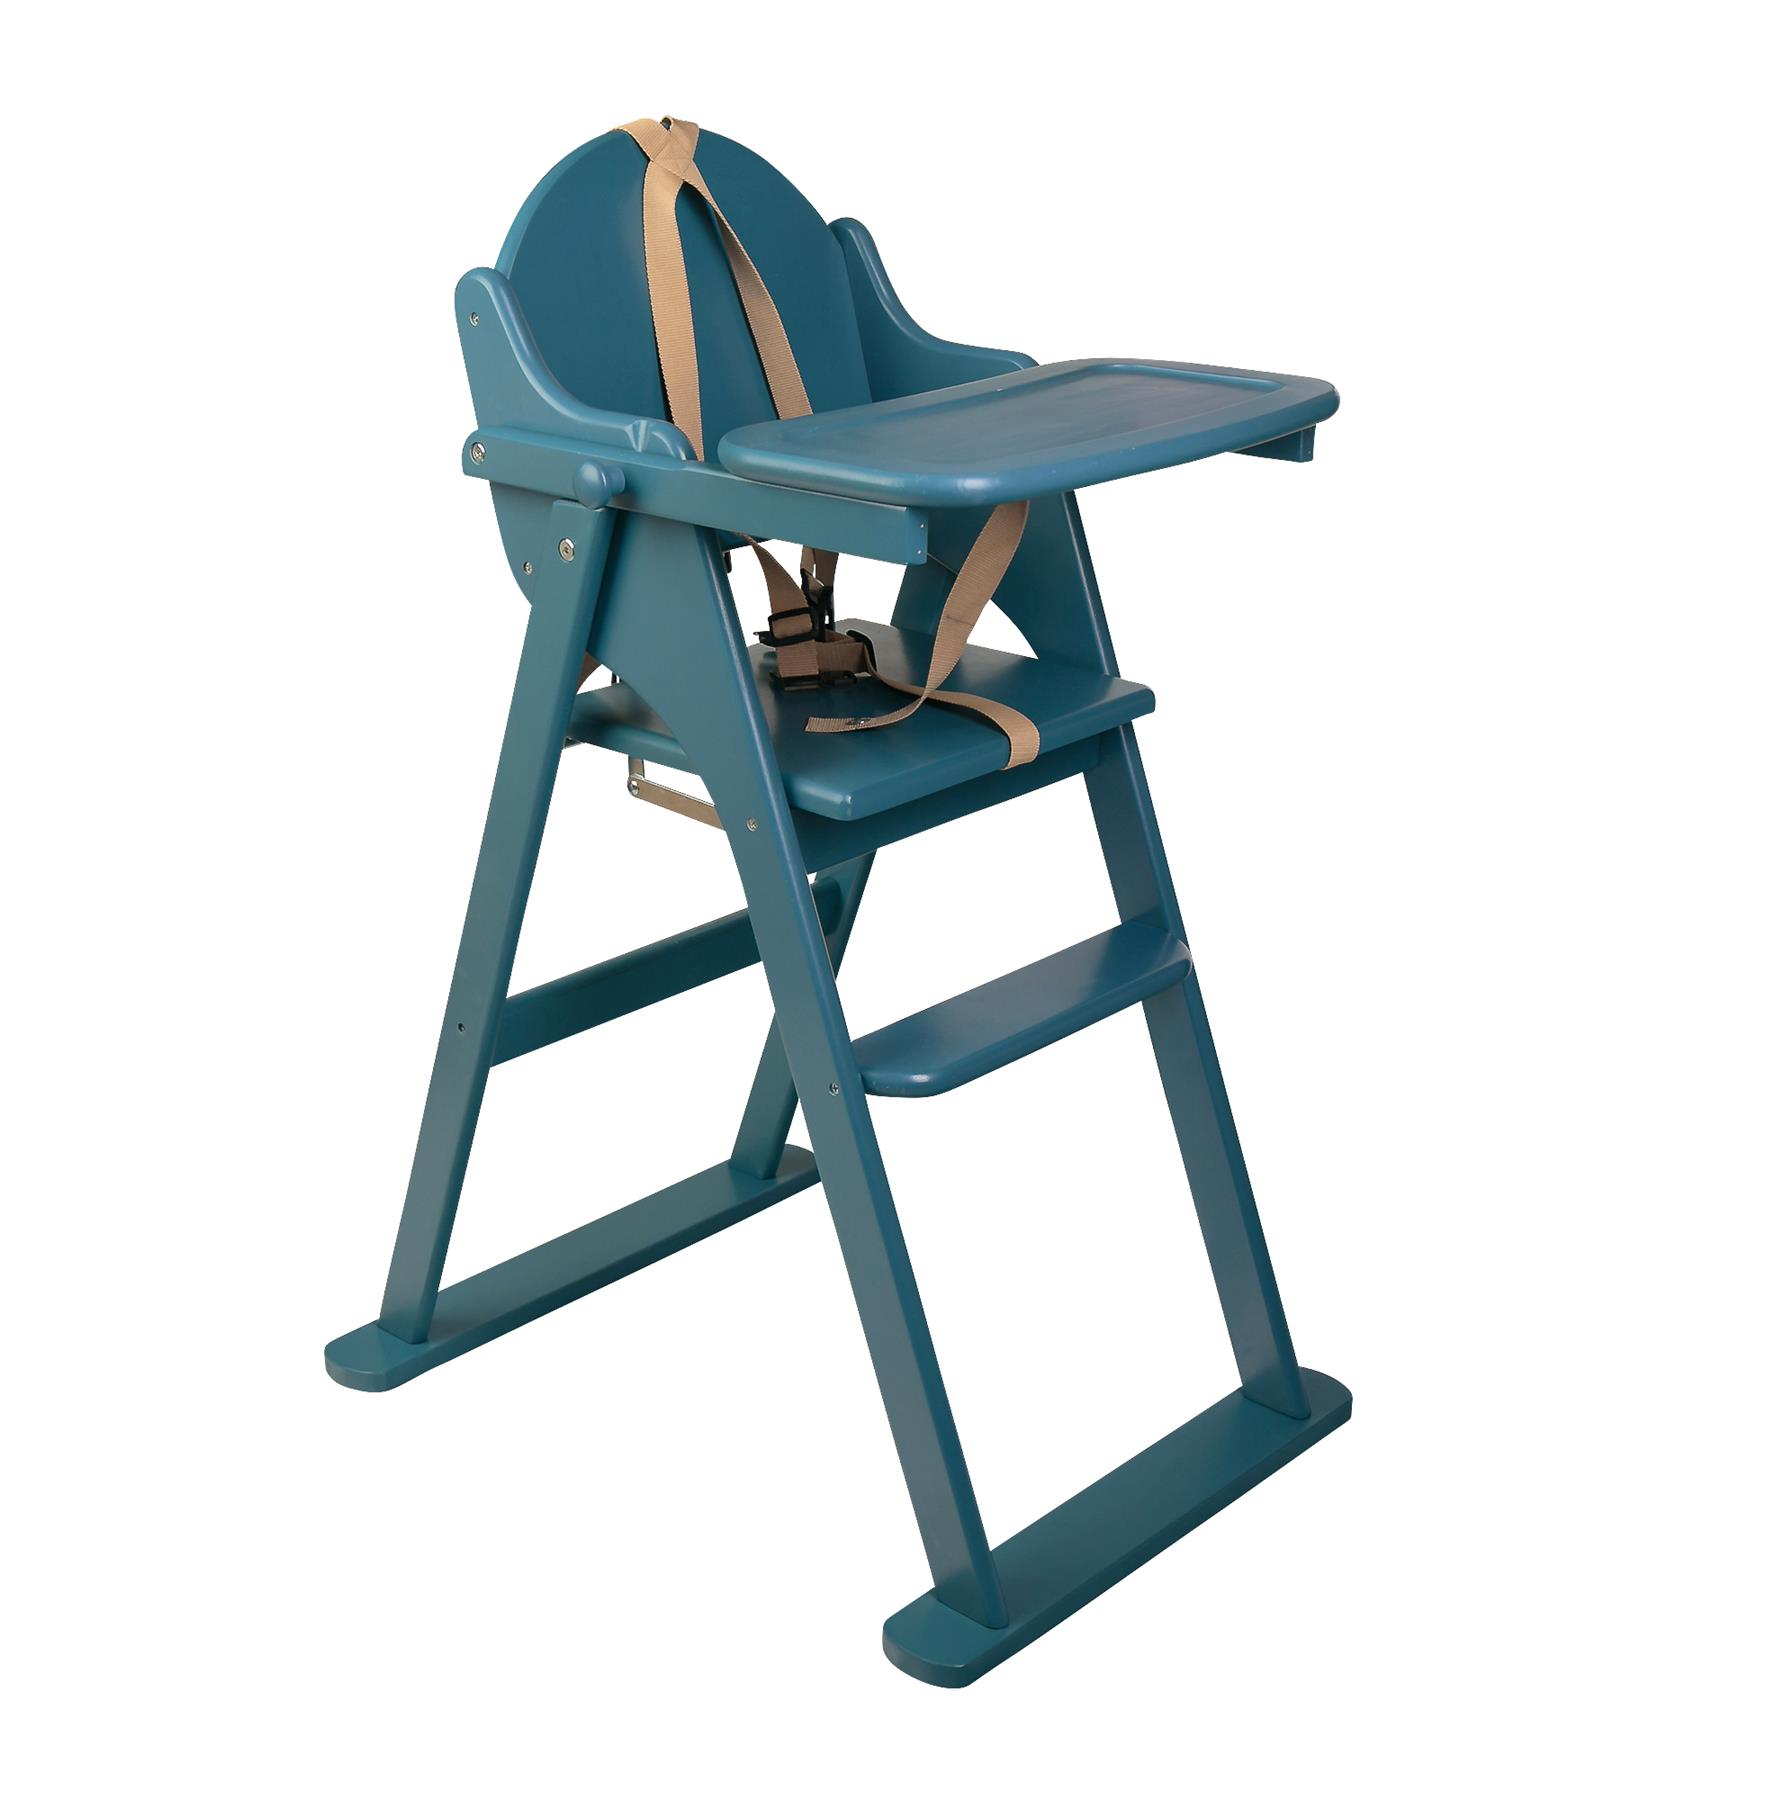 Safetots Putaway Folding Wooden Highchair Easy Store Baby ...